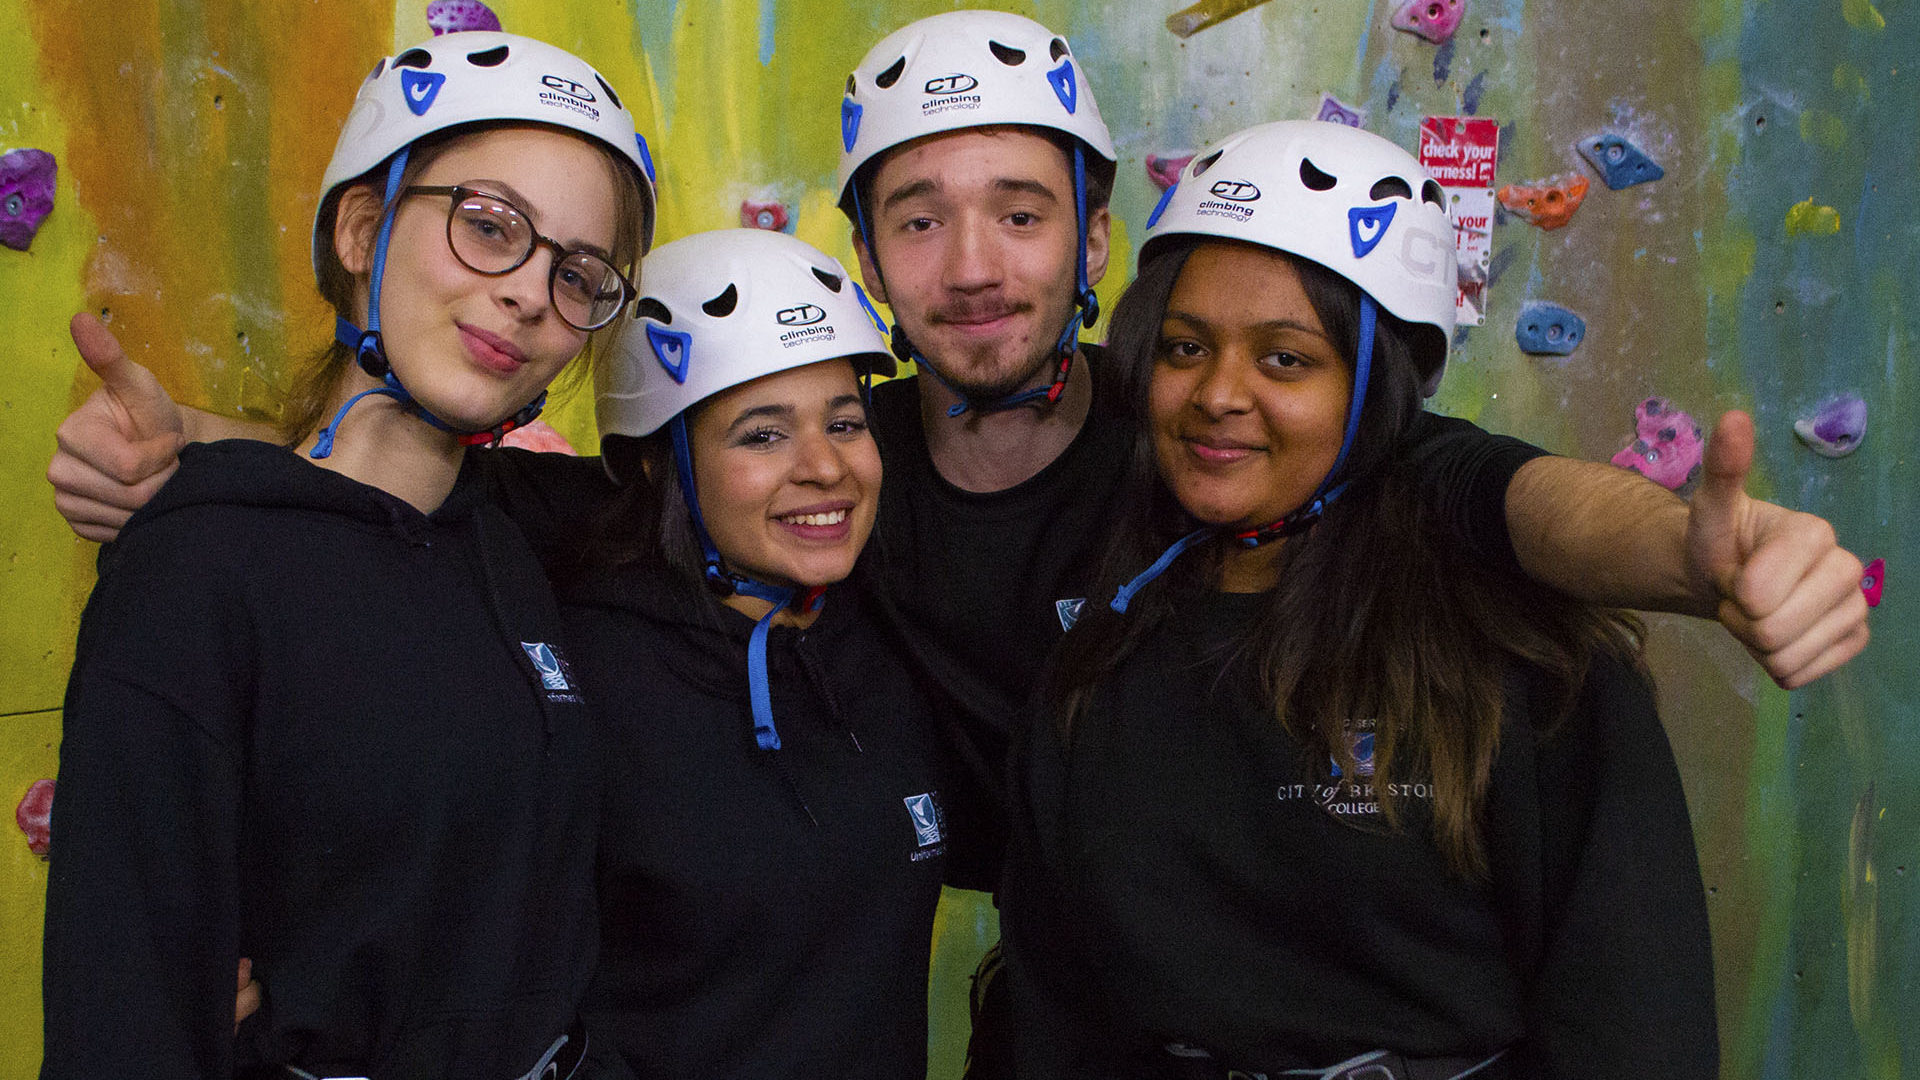 Public Services. Students at climbing wall, smiling